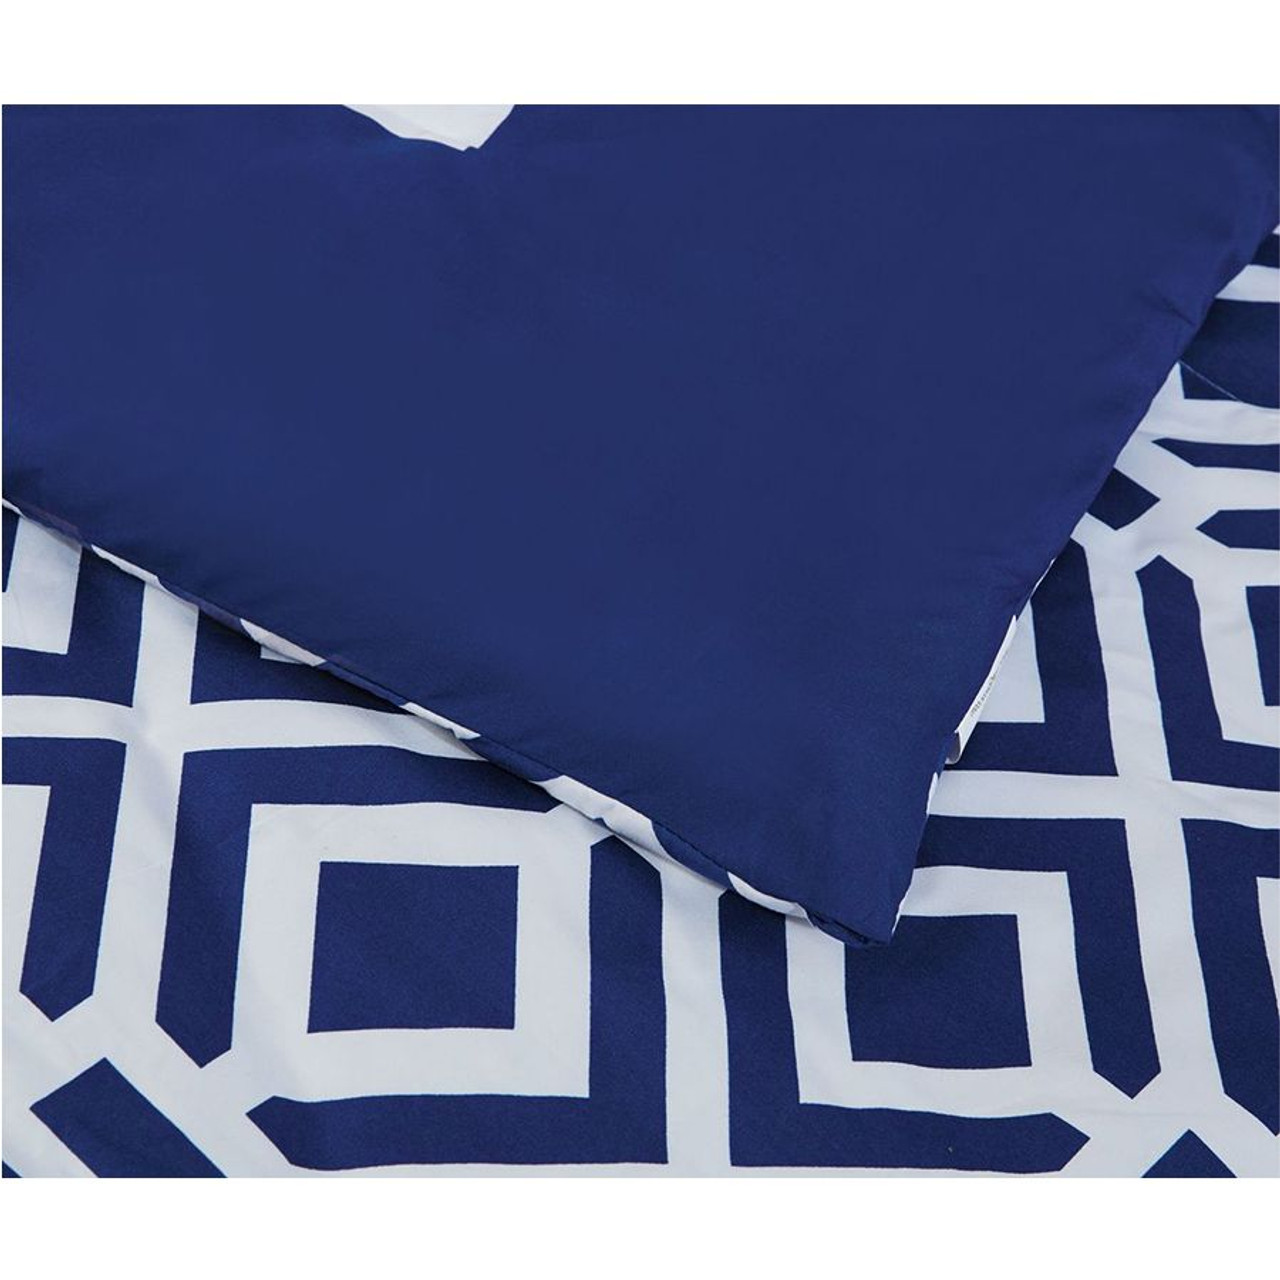 Comforter Flat & Fitted Sheets set 8 pcs Soft Microfiber Navy Blue and White King Size by Legacy Decor